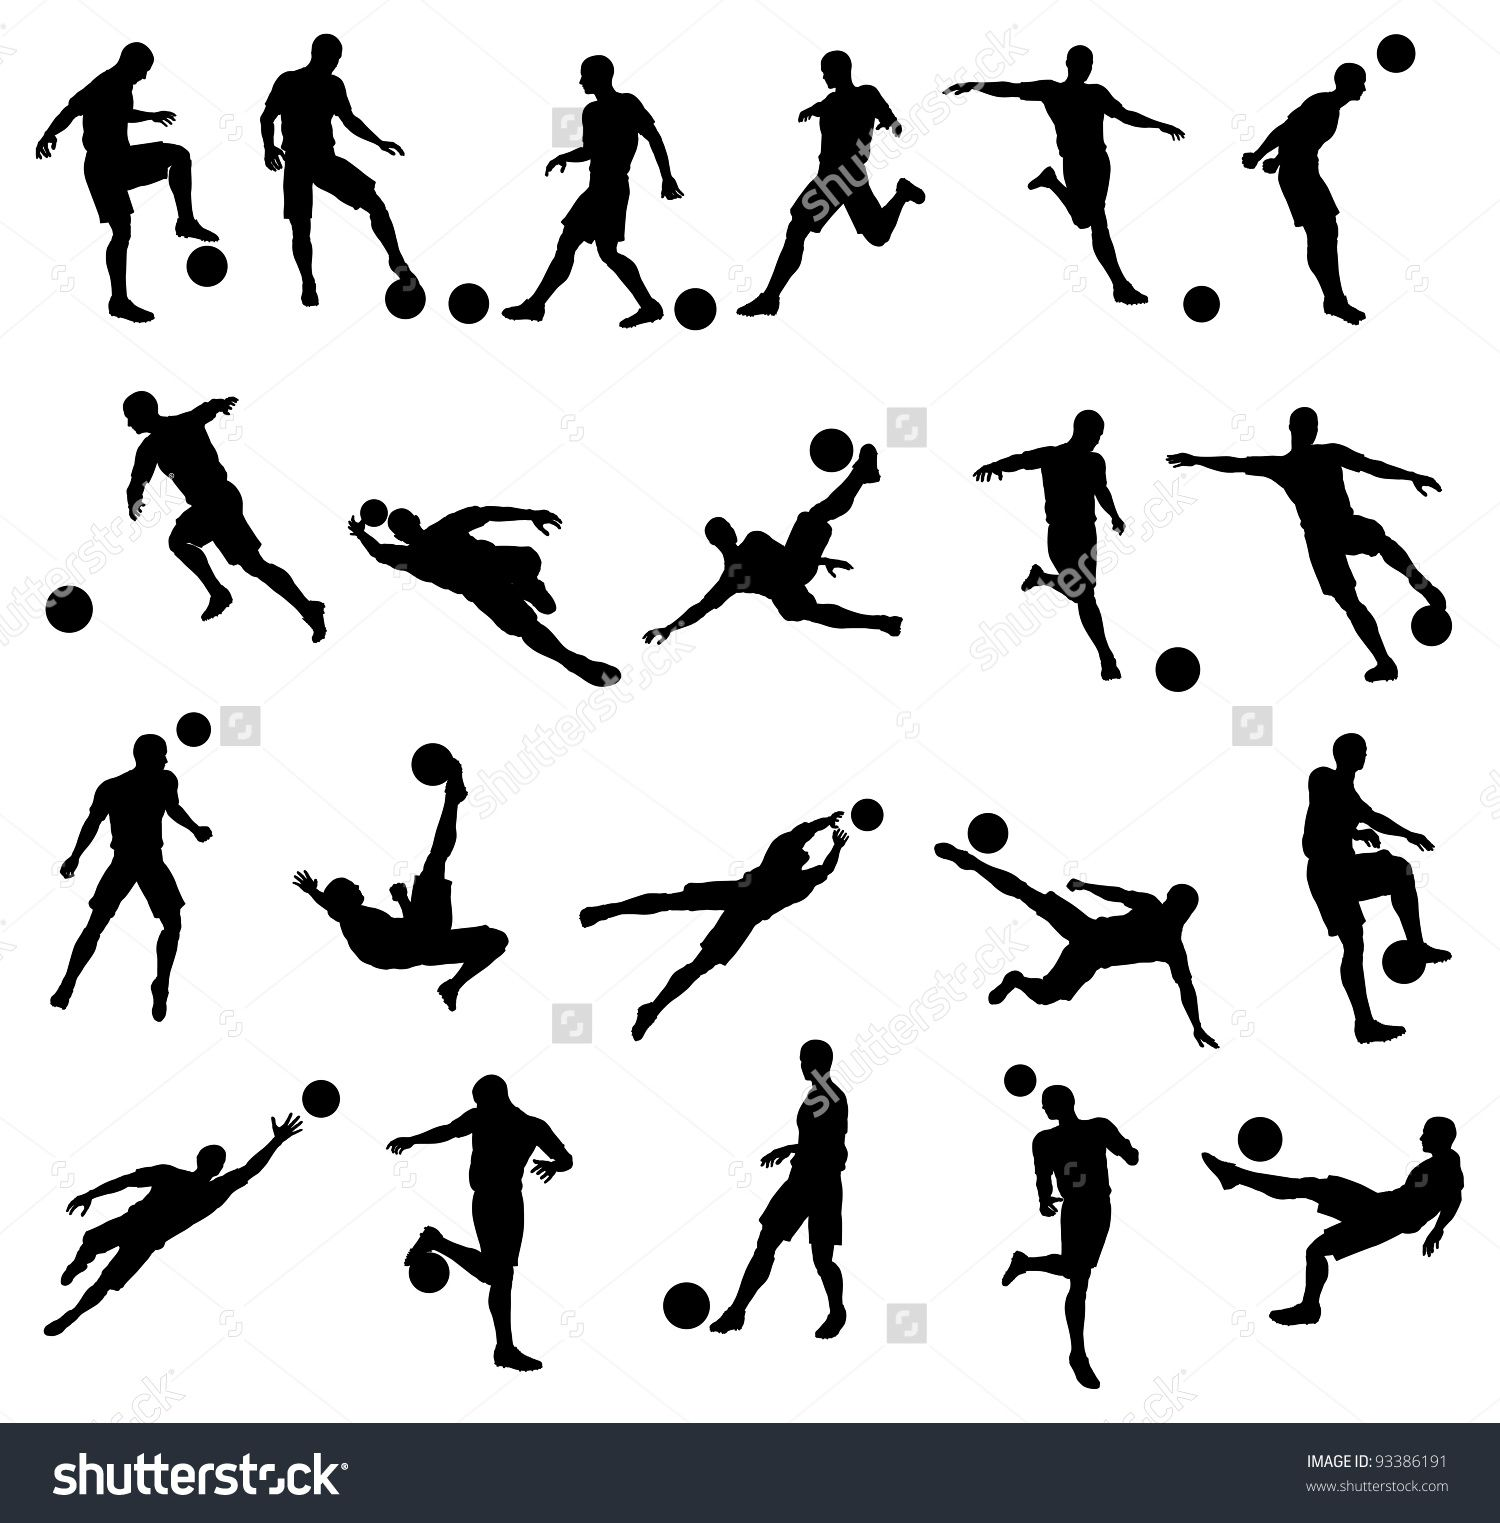 Very High Quality Detailed Soccer Football Player Silhouette Cutout Outlines Tatuajes Futboleros Tatuajes Futbol Tatuajes De Acuarela